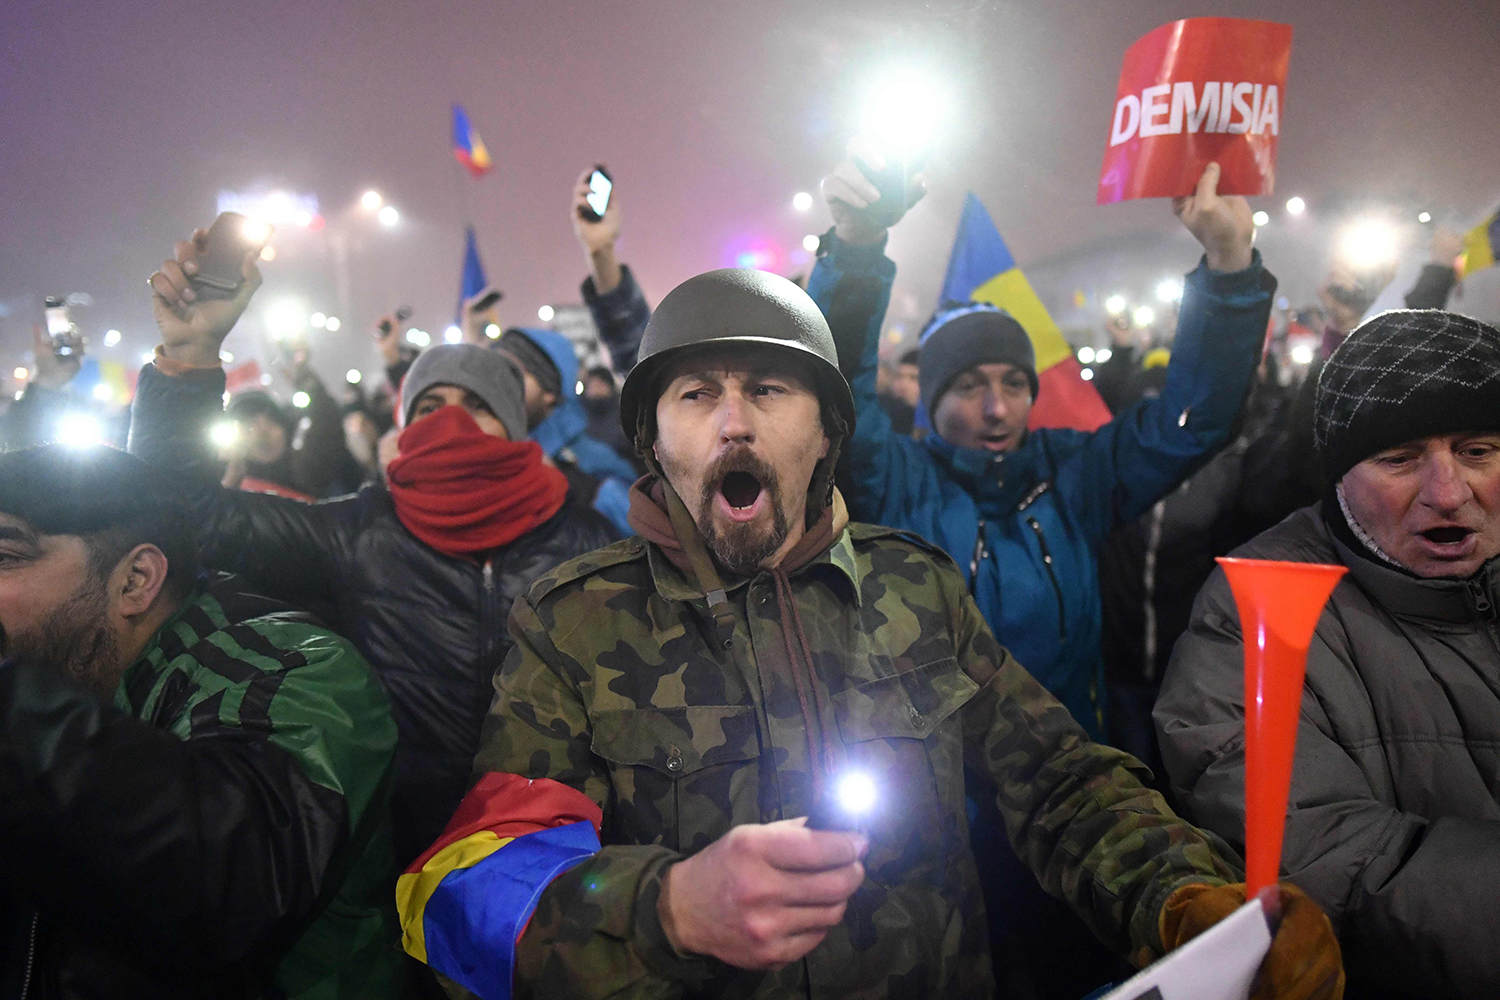 TOPSHOT - People protest against the government in Bucharest on February 6, 2017. Romania's government formally repealed Sunday contentious corruption legislation that has sparked the biggest protests since the fall of dictator Nicolae Ceausescu in 1989, ministerial sources said. / AFP PHOTO / Daniel MIHAILESCU / TT / kod 444